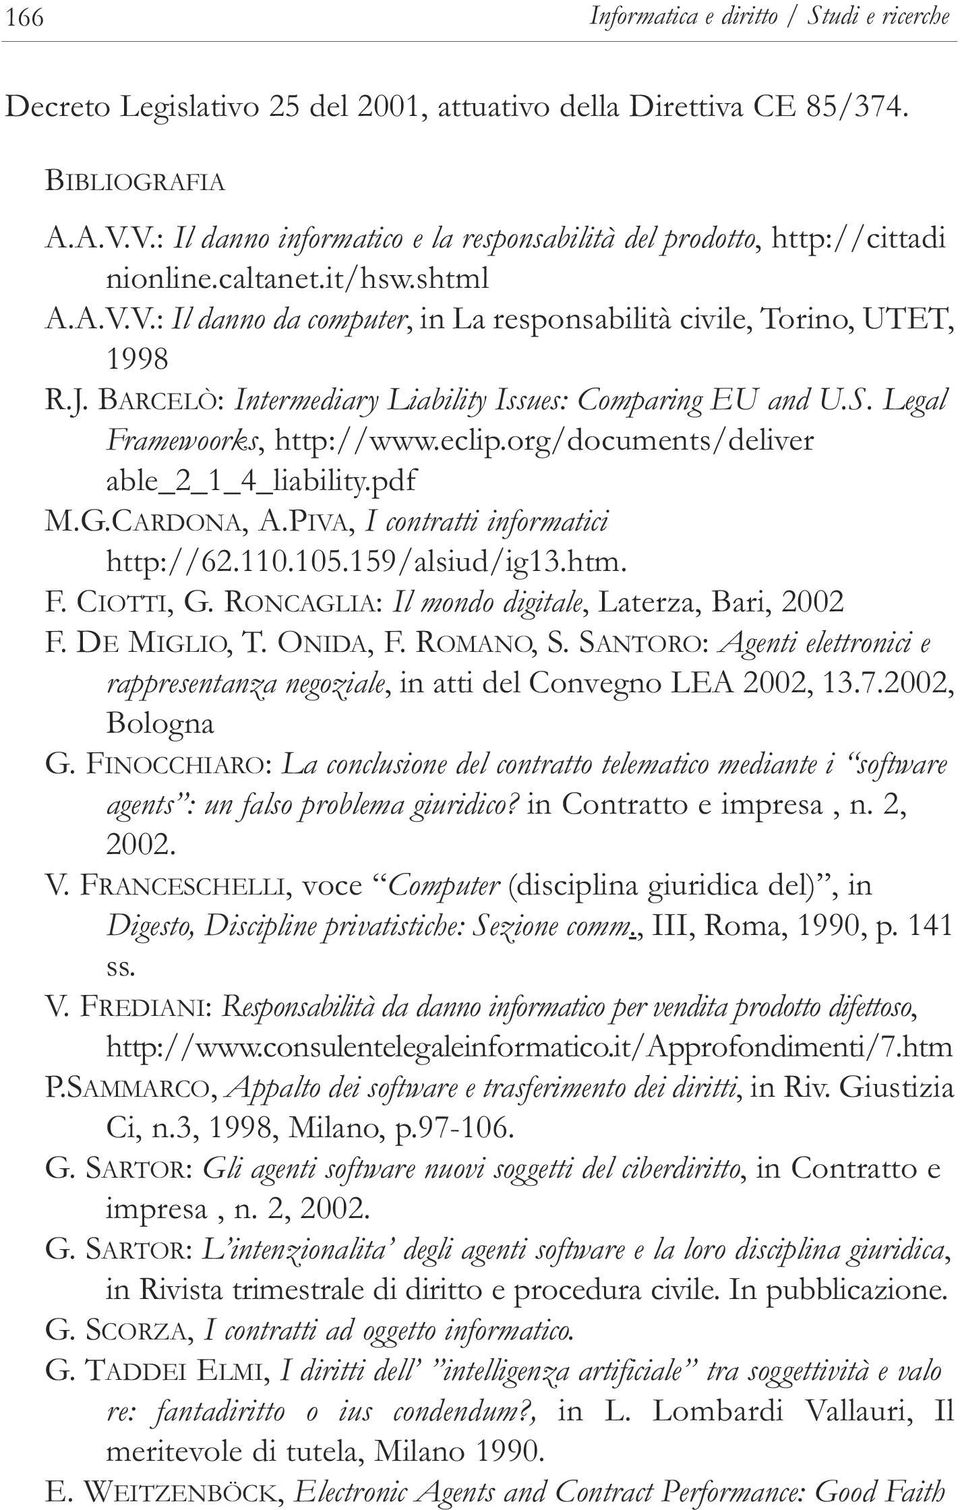 BARCELÒ: Intermediary Liability Issues: Comparing EU and U.S. Legal ramewoorks, http://www.eclip.org/documents/deliver able_2_1_4_liability.pdf M.G.CARDONA, A.PIVA, I contratti informatici http://62.